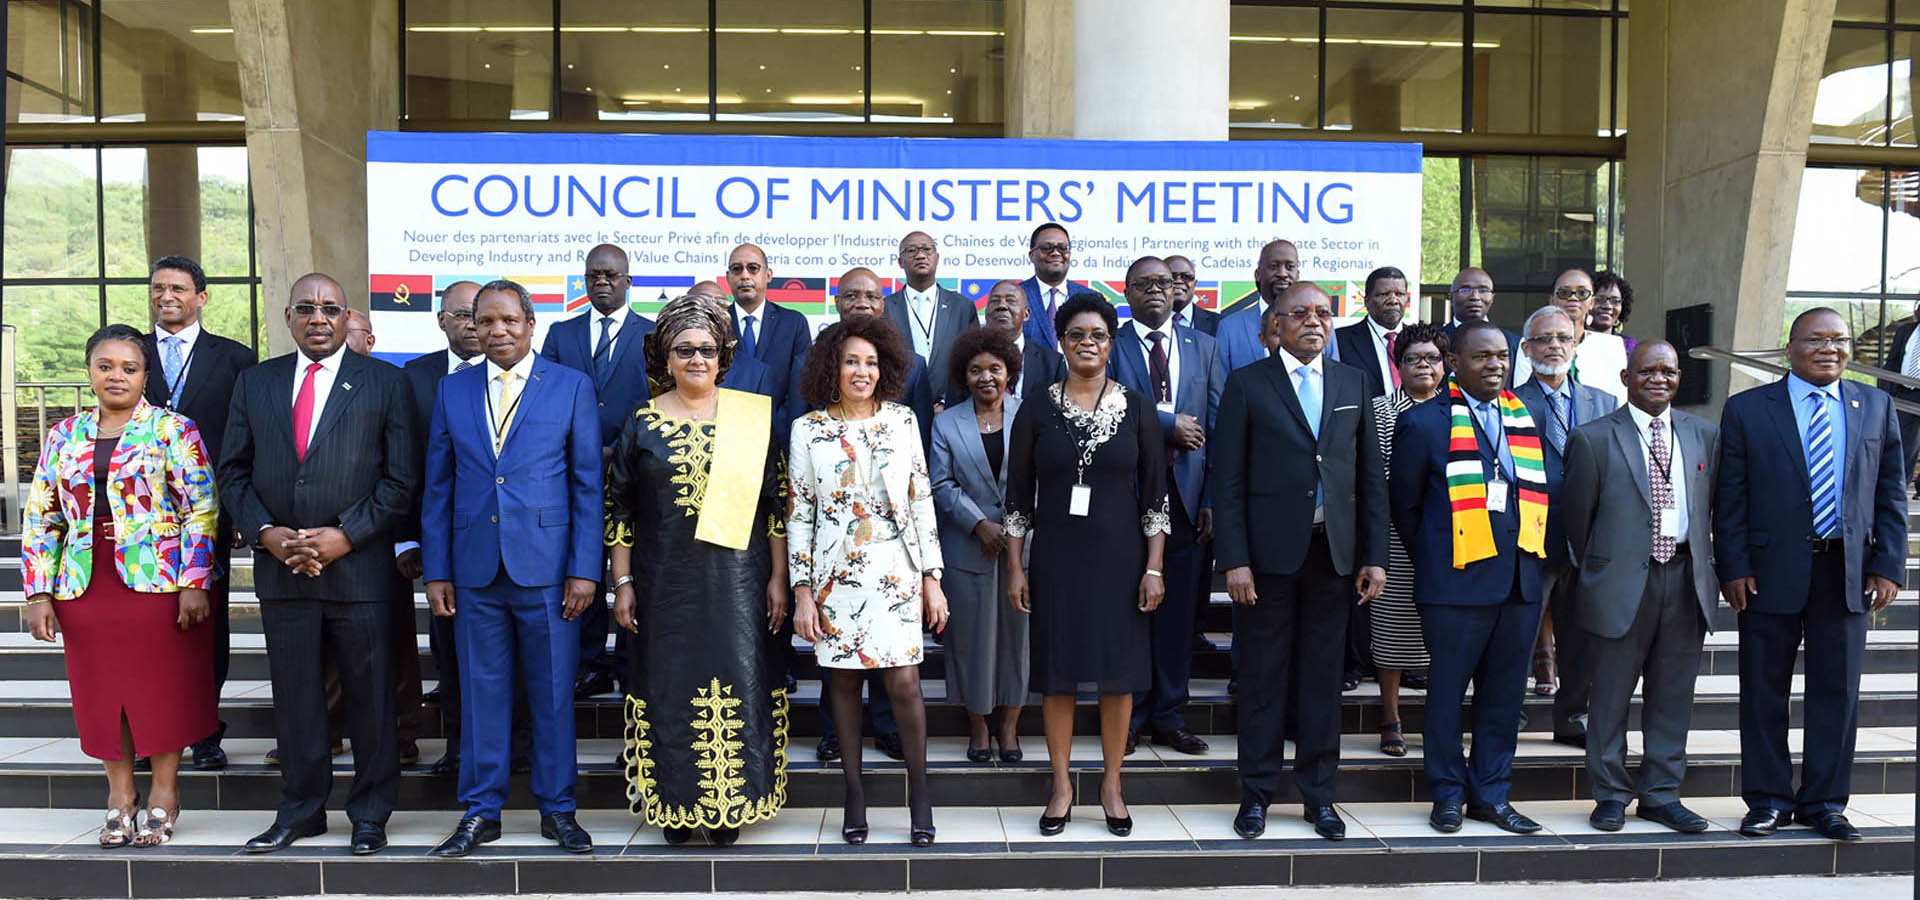 SADC Council of Ministers Mar 2018